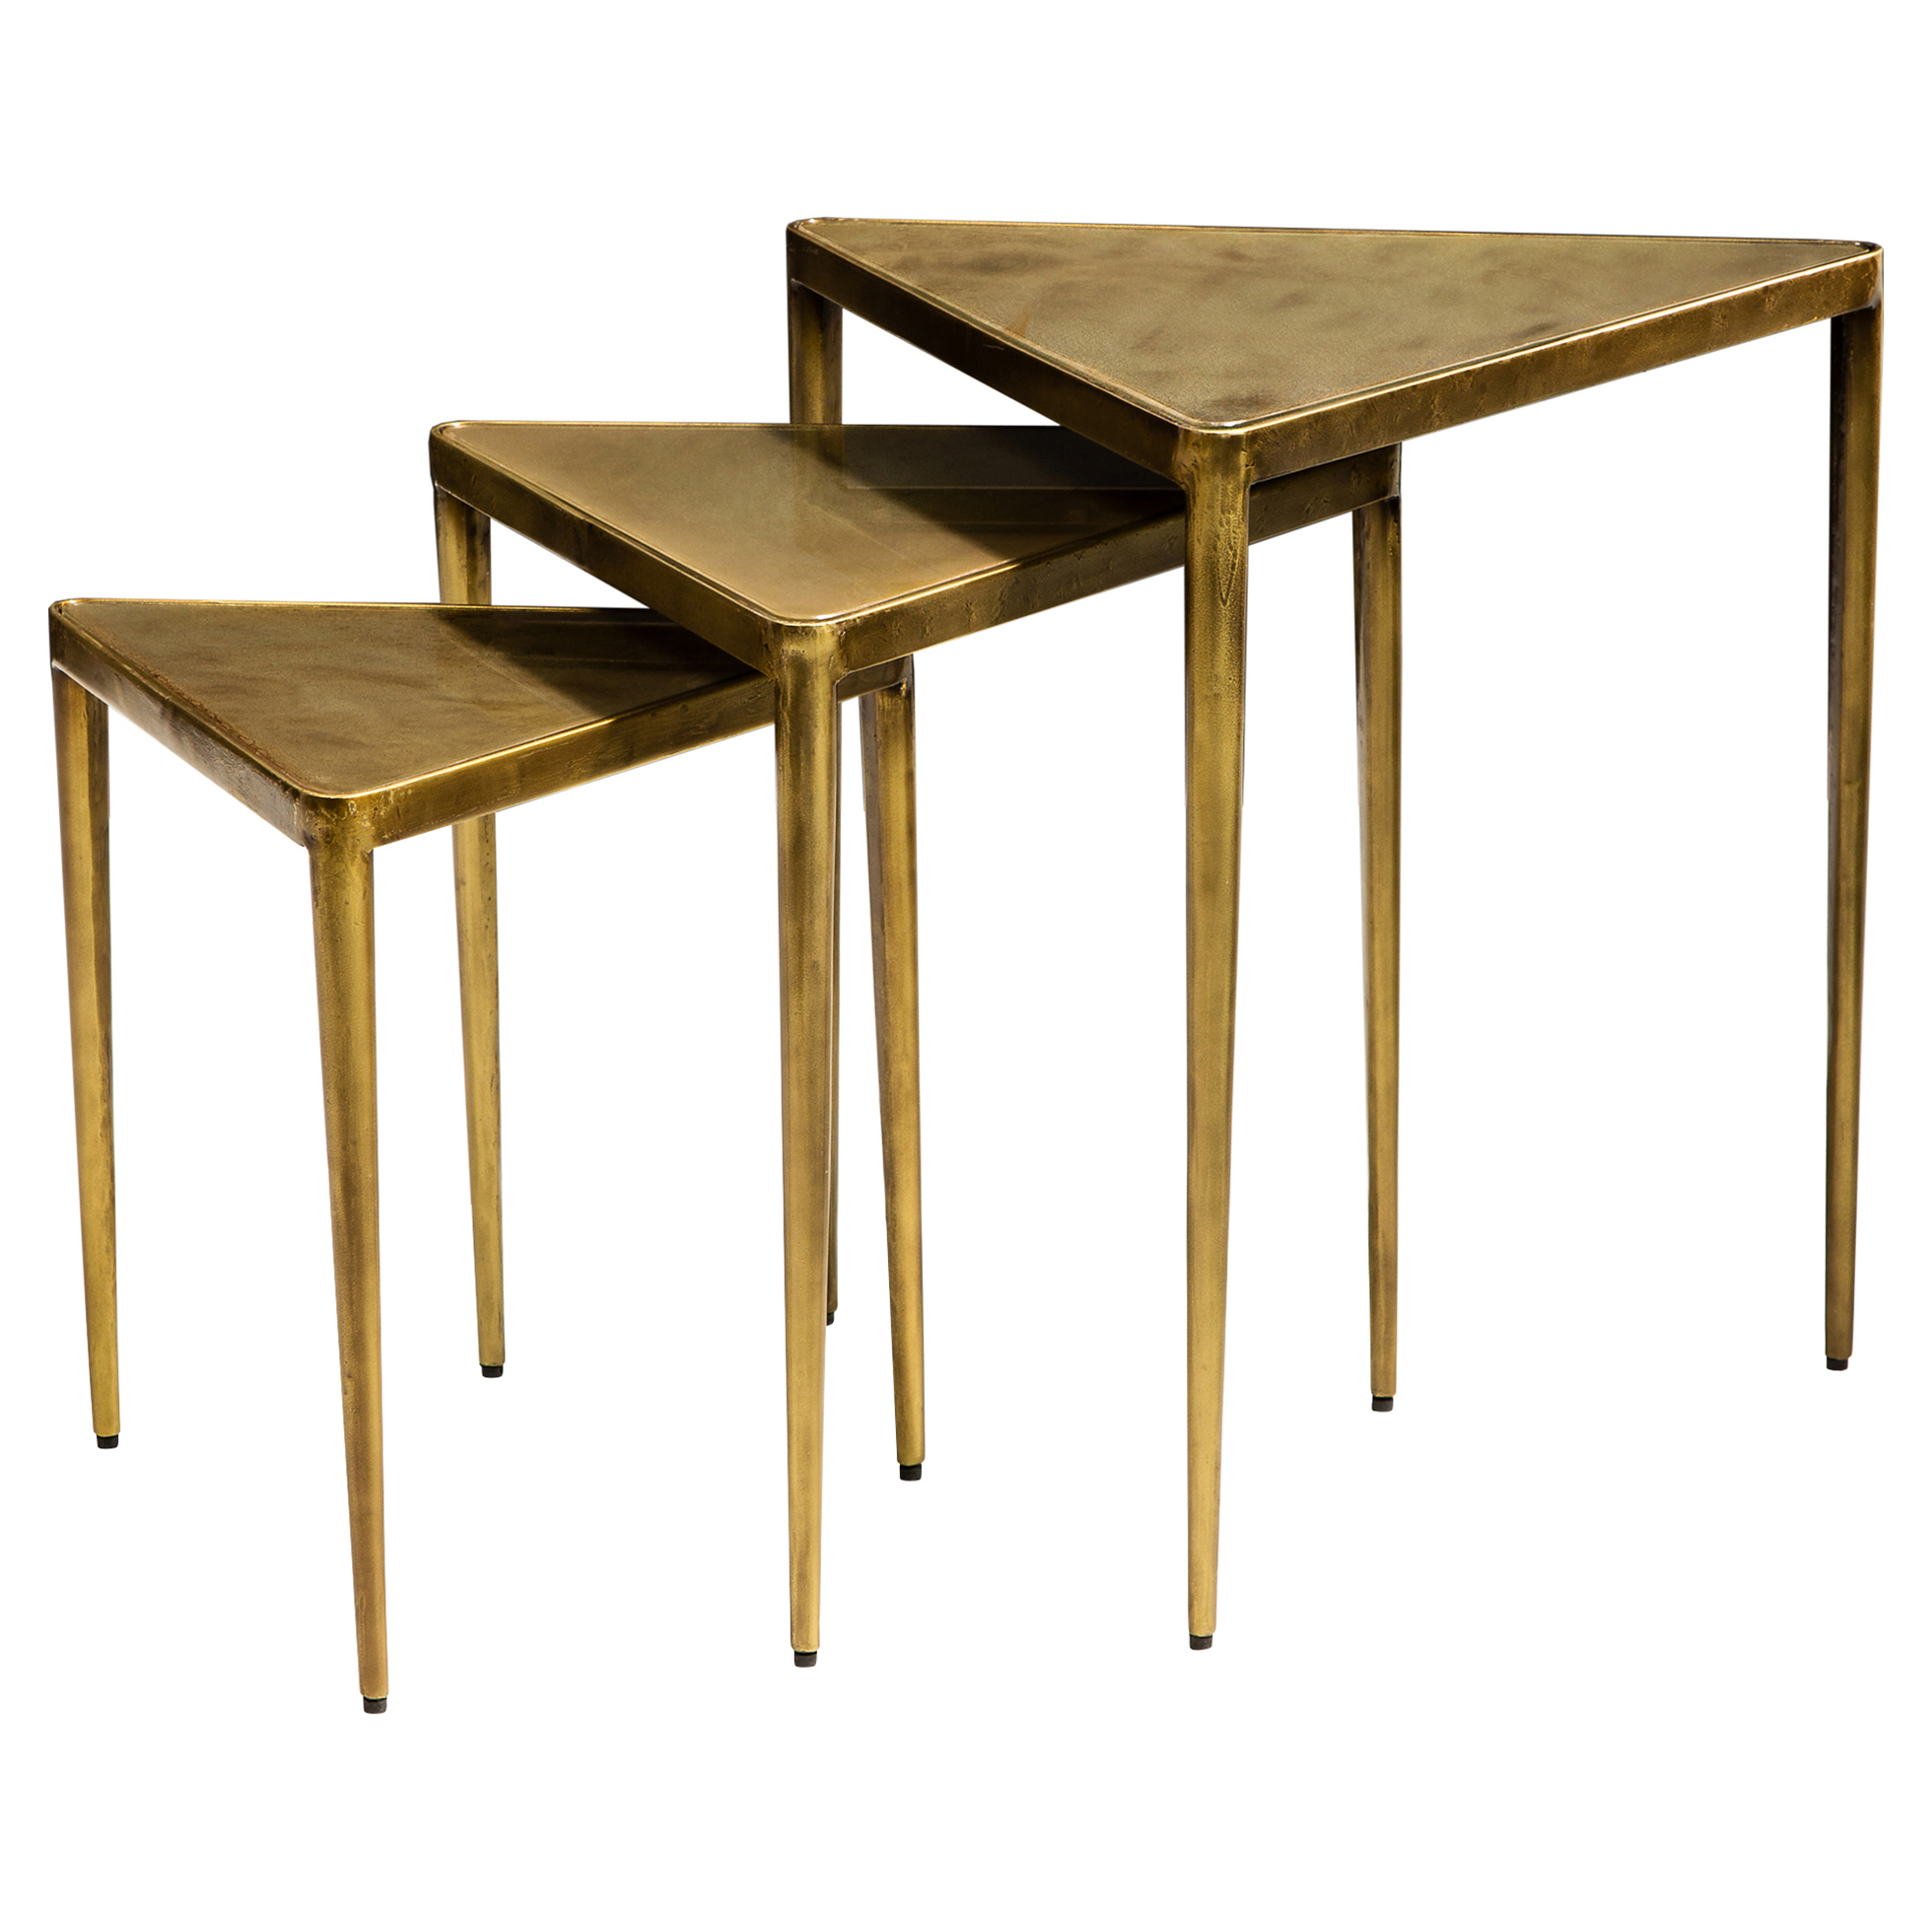 Ciri Global Antique Brass Triangle Nesting Tables - Set of 3